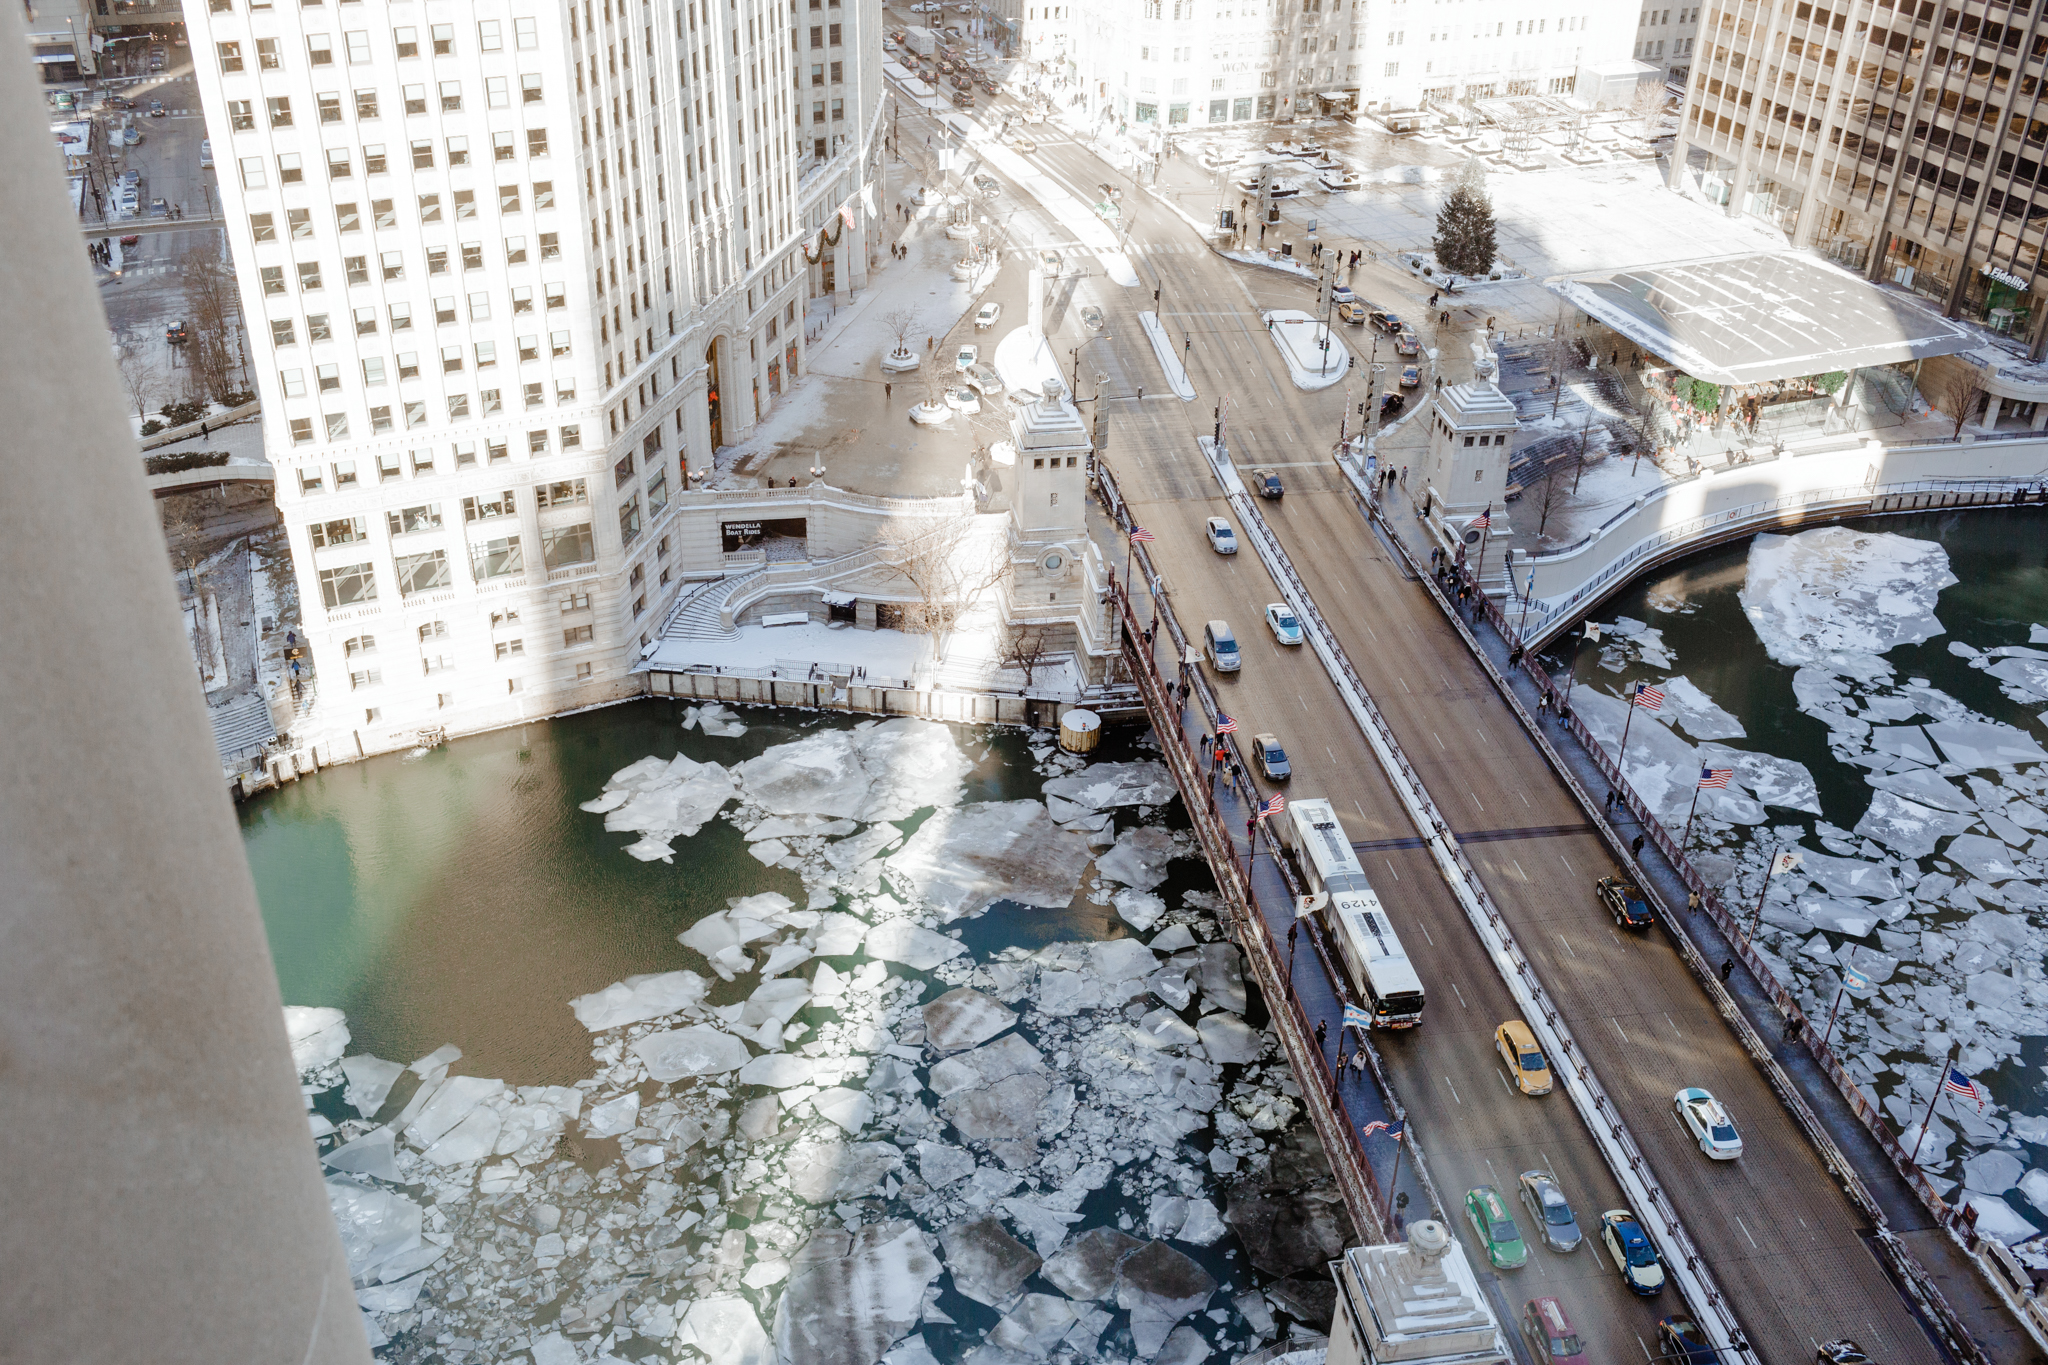 Icy Chicago River in Winter